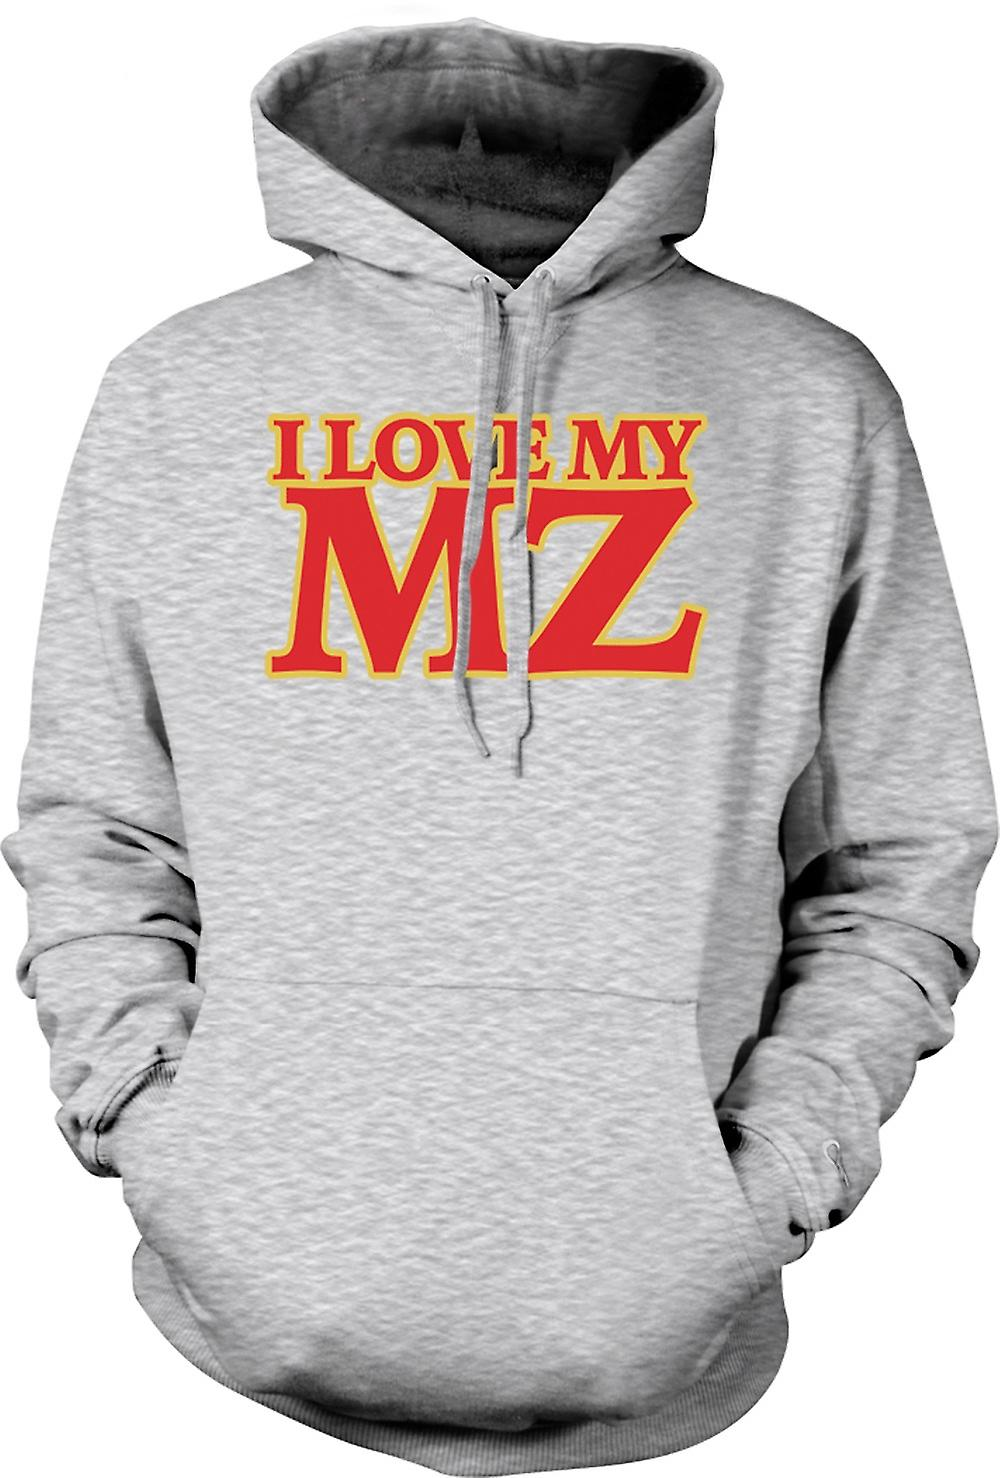 Mens Hoodie - I love my MZ - Motorcycle - Biker